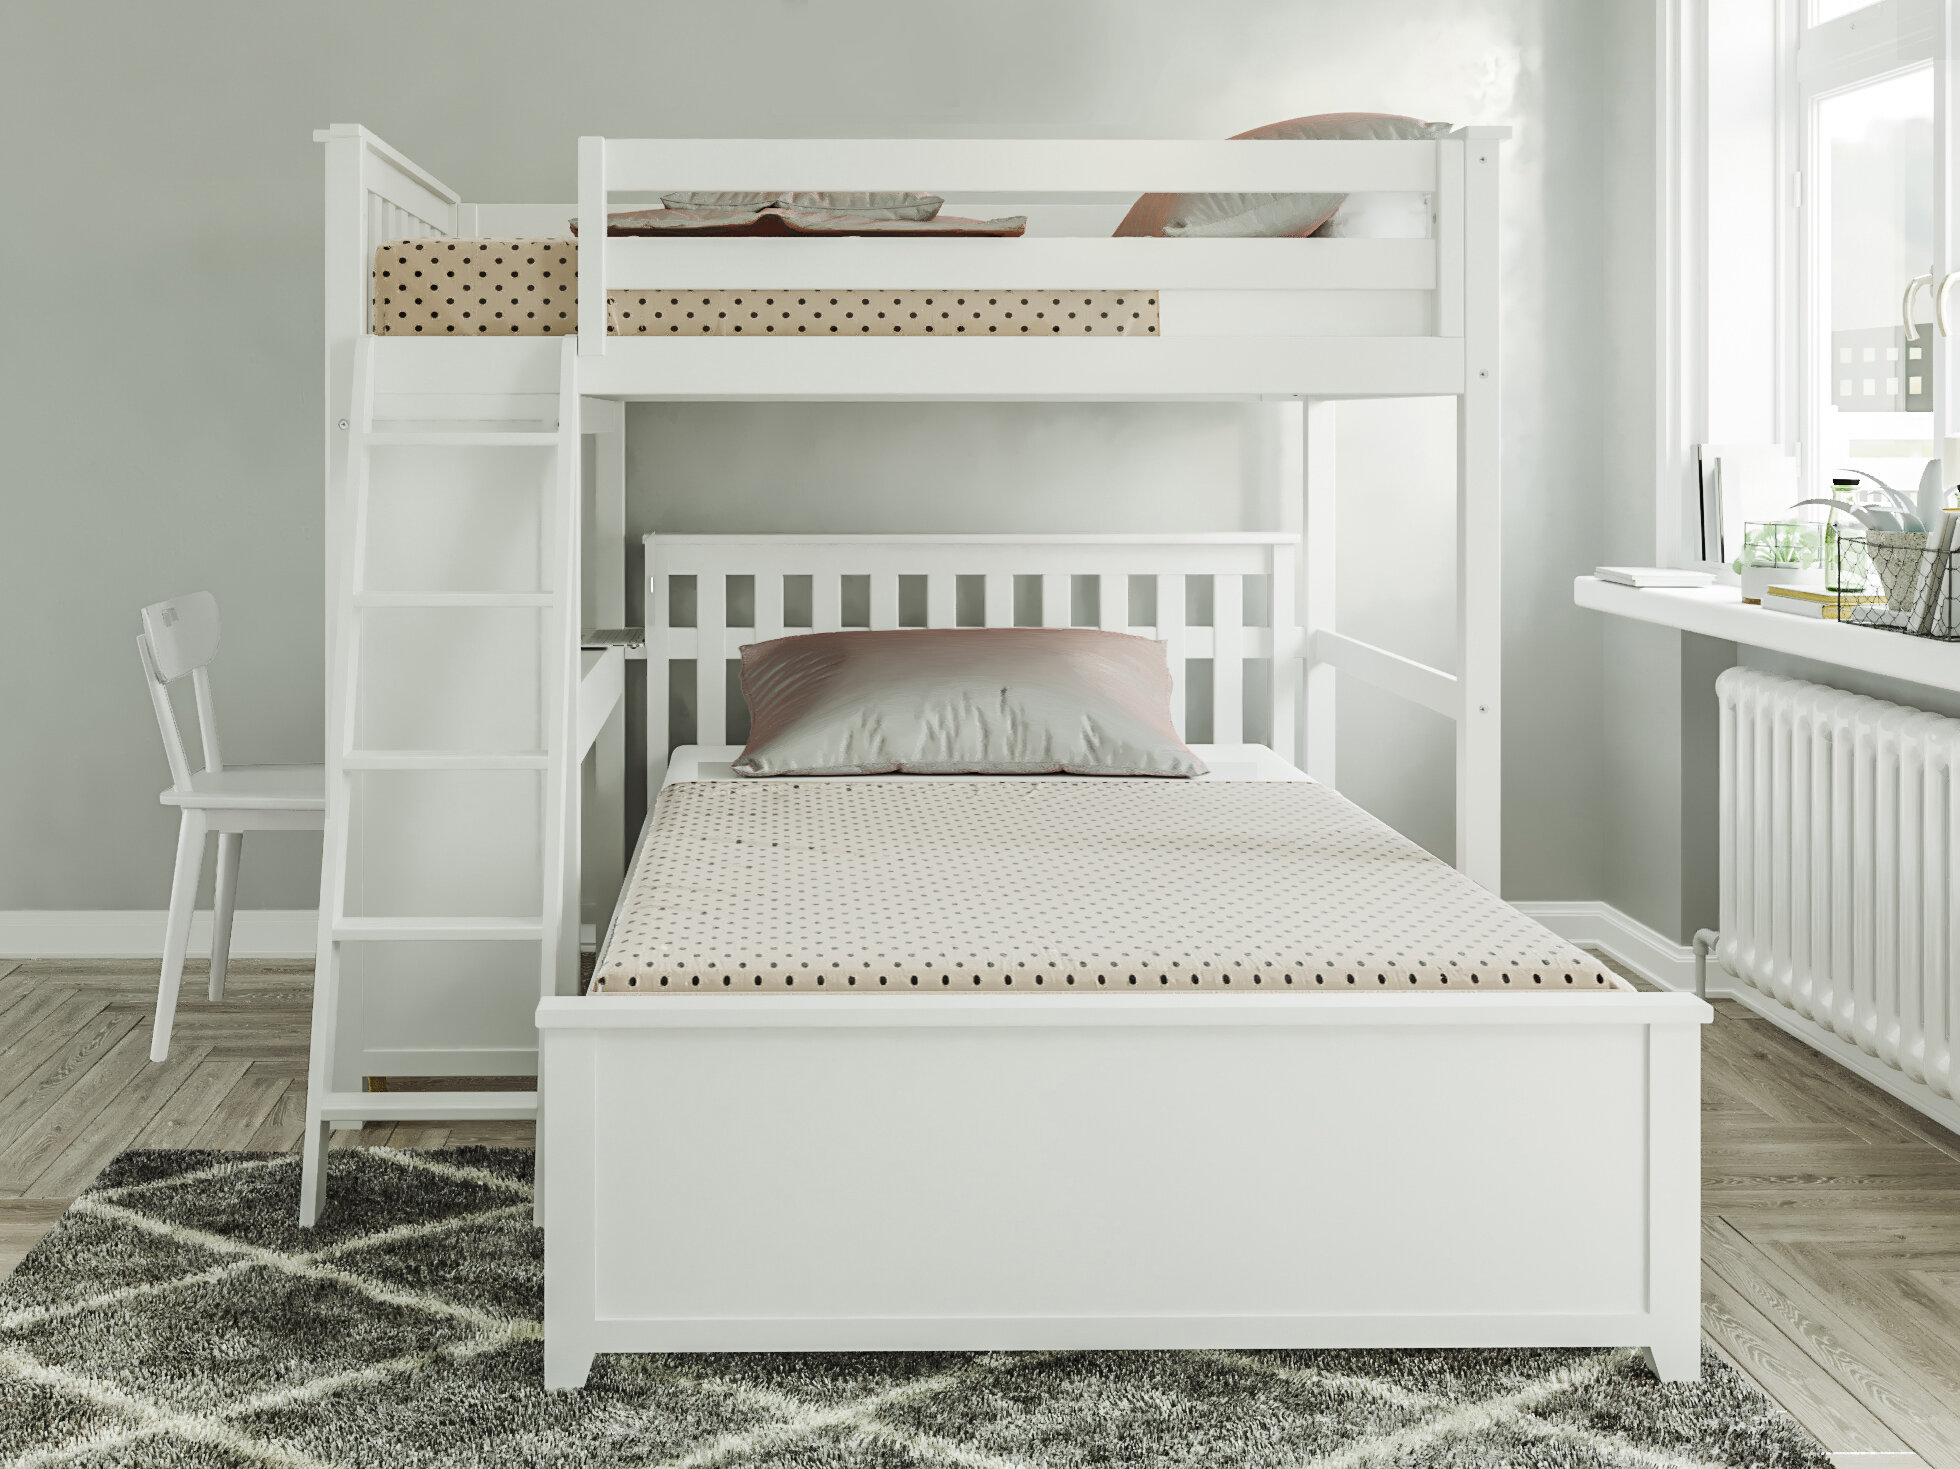 Picture of: Harriet Bee Geyer Twin Over Full L Shaped Bunk Bed Reviews Wayfair Ca